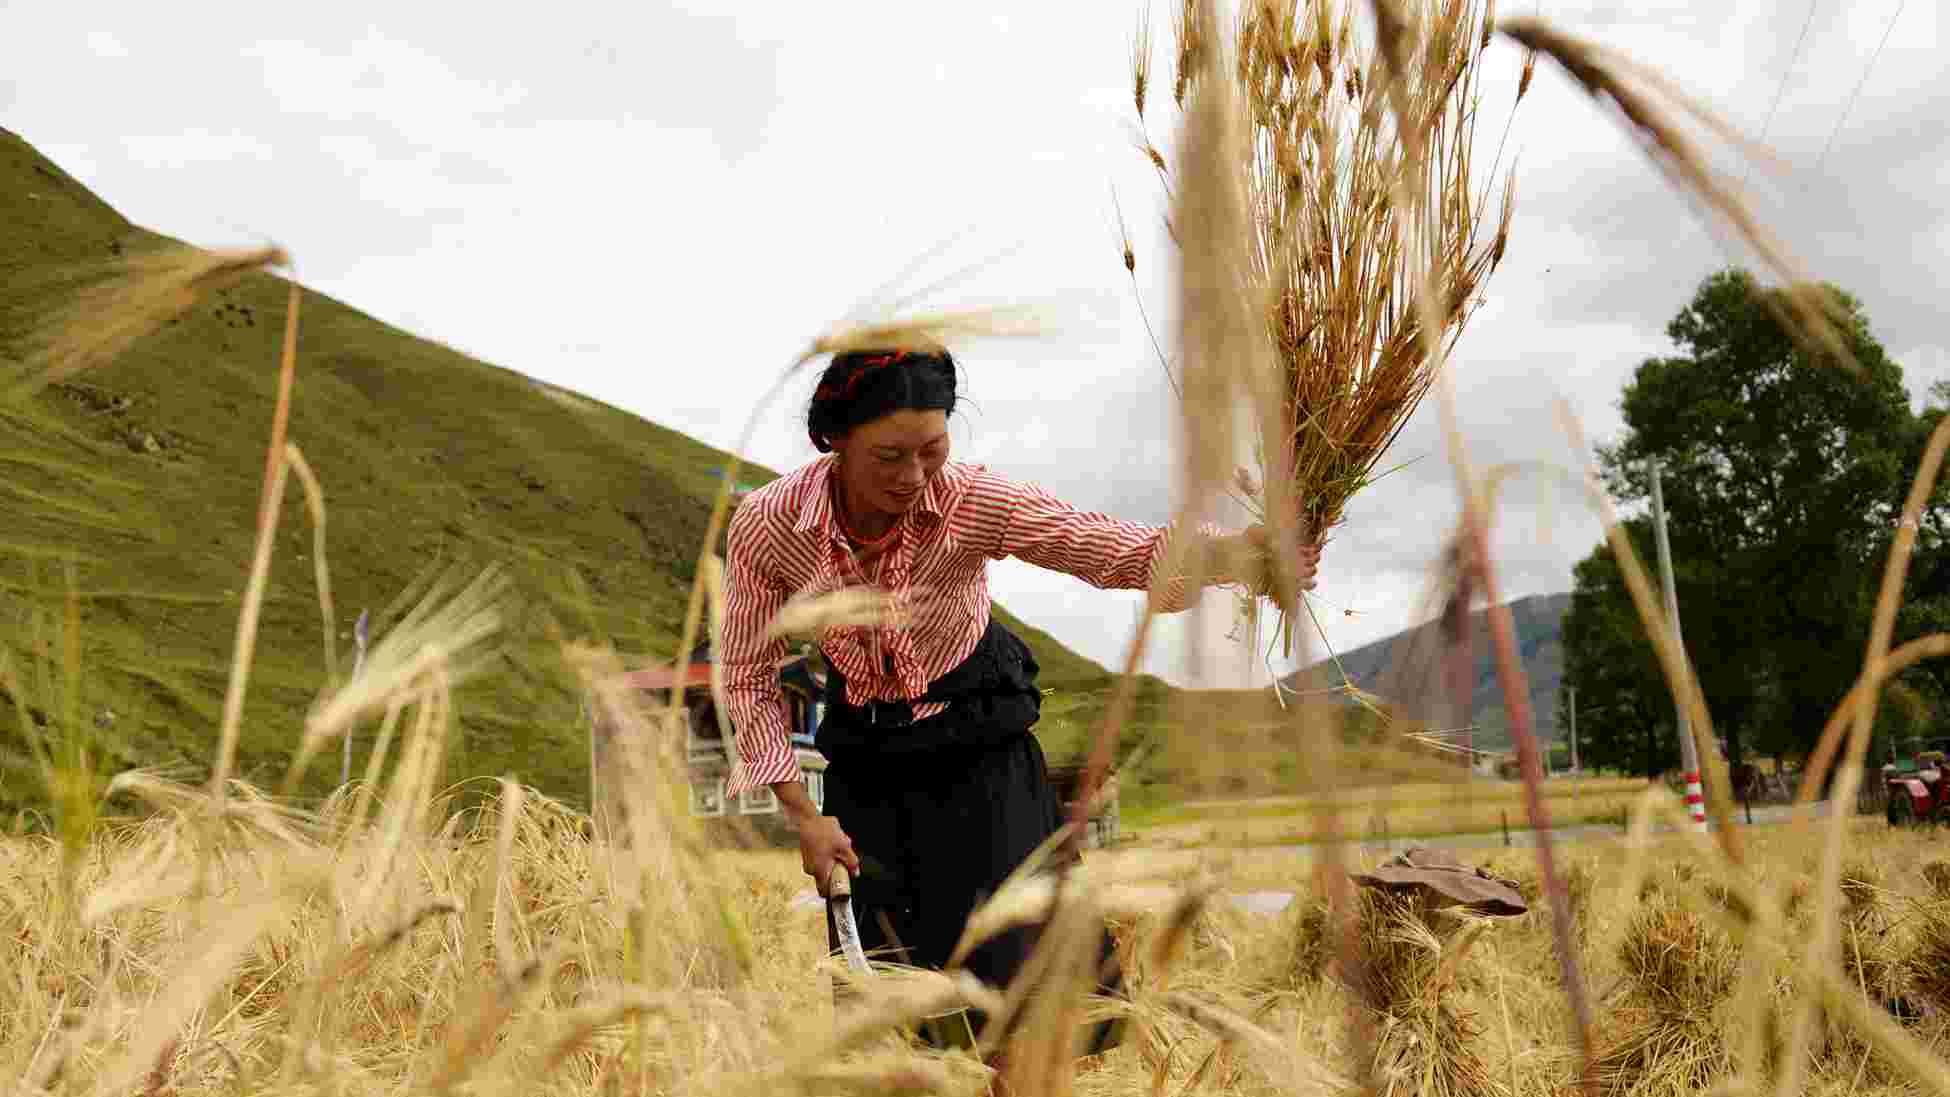 China's No. 1 central document prioritizes poverty relief, improving rural weak links